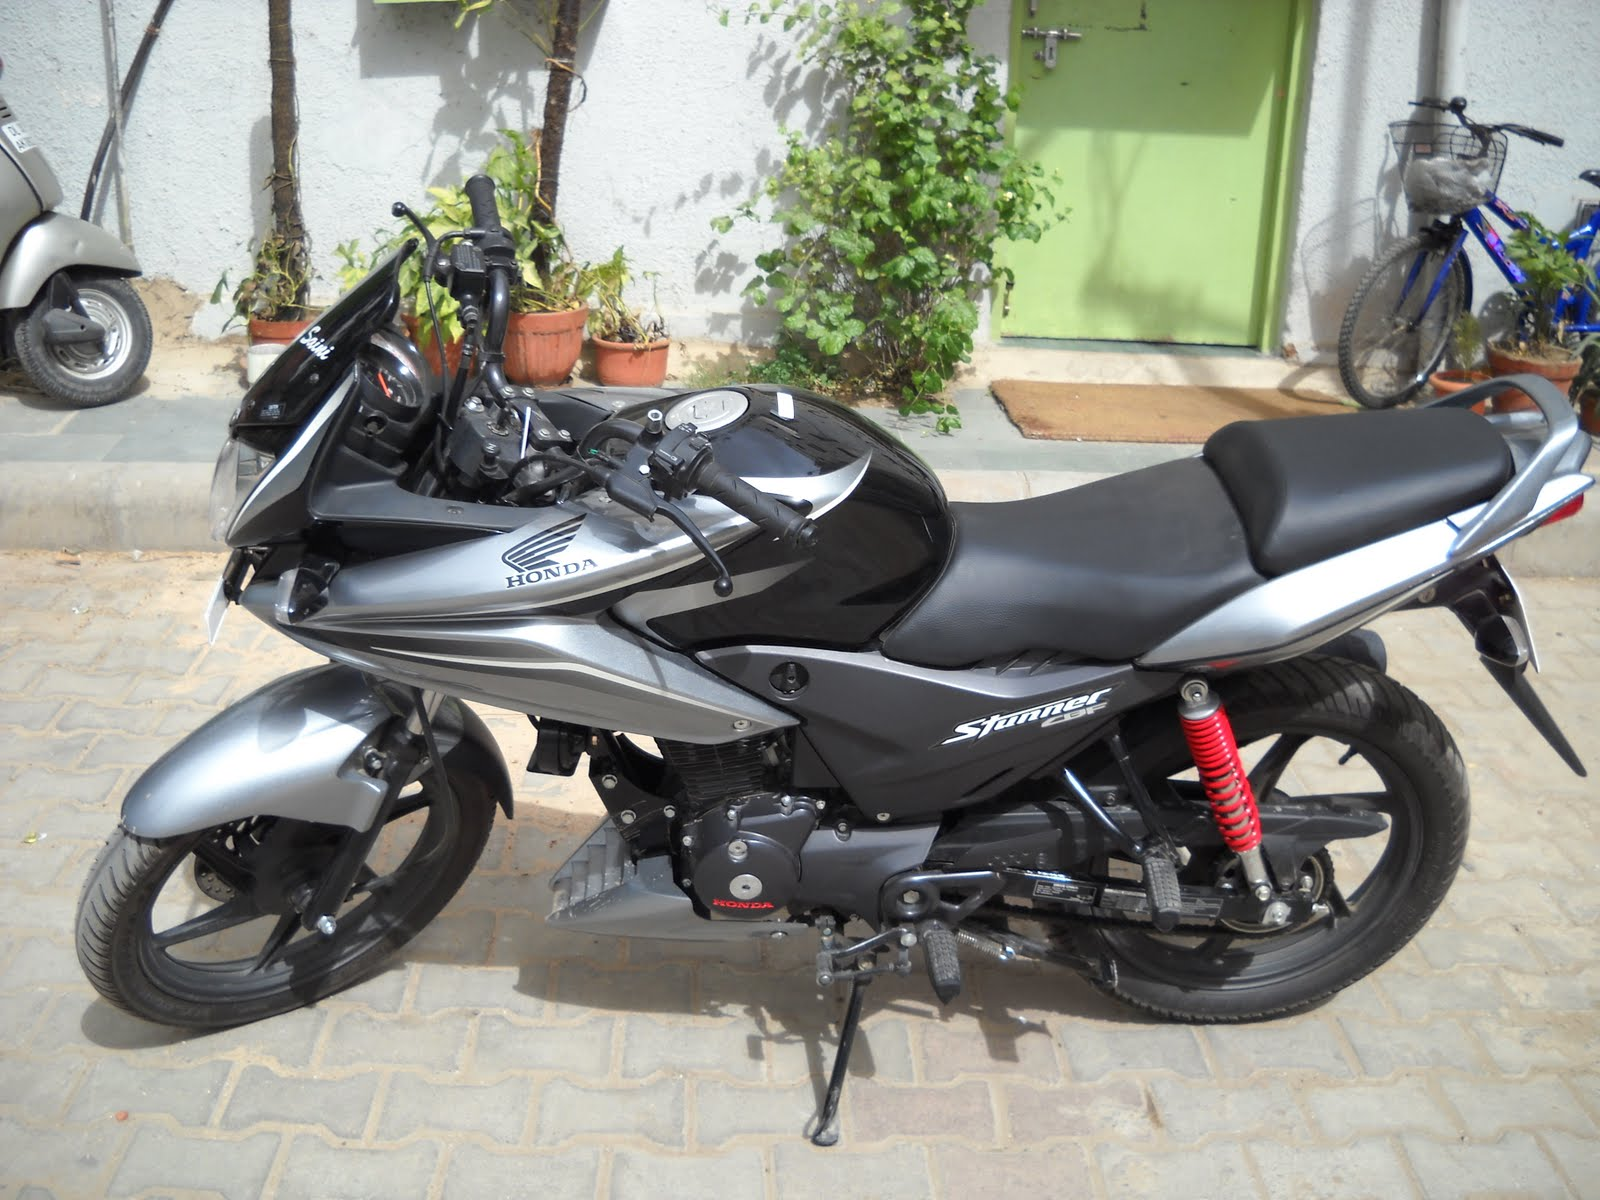 New Bikes In India New Bikes Price Models In India .html | Autos